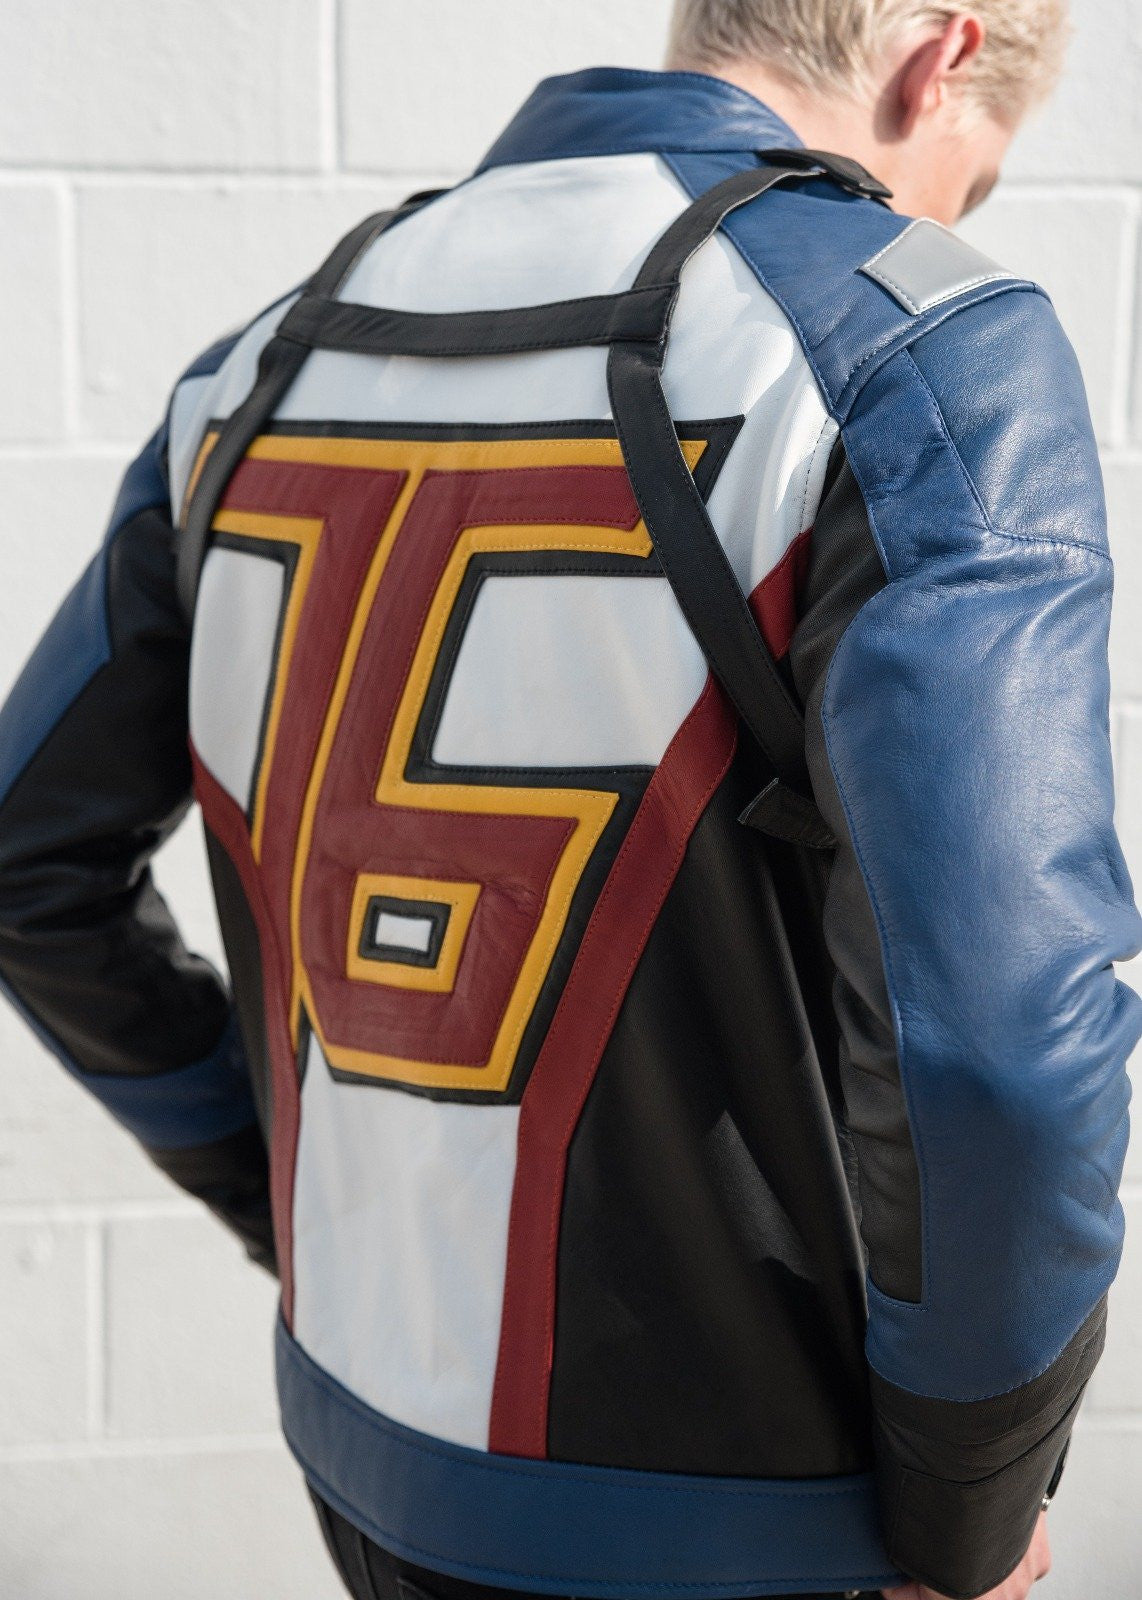 76-Soldier-Leather-Blue-And-White-Jacket